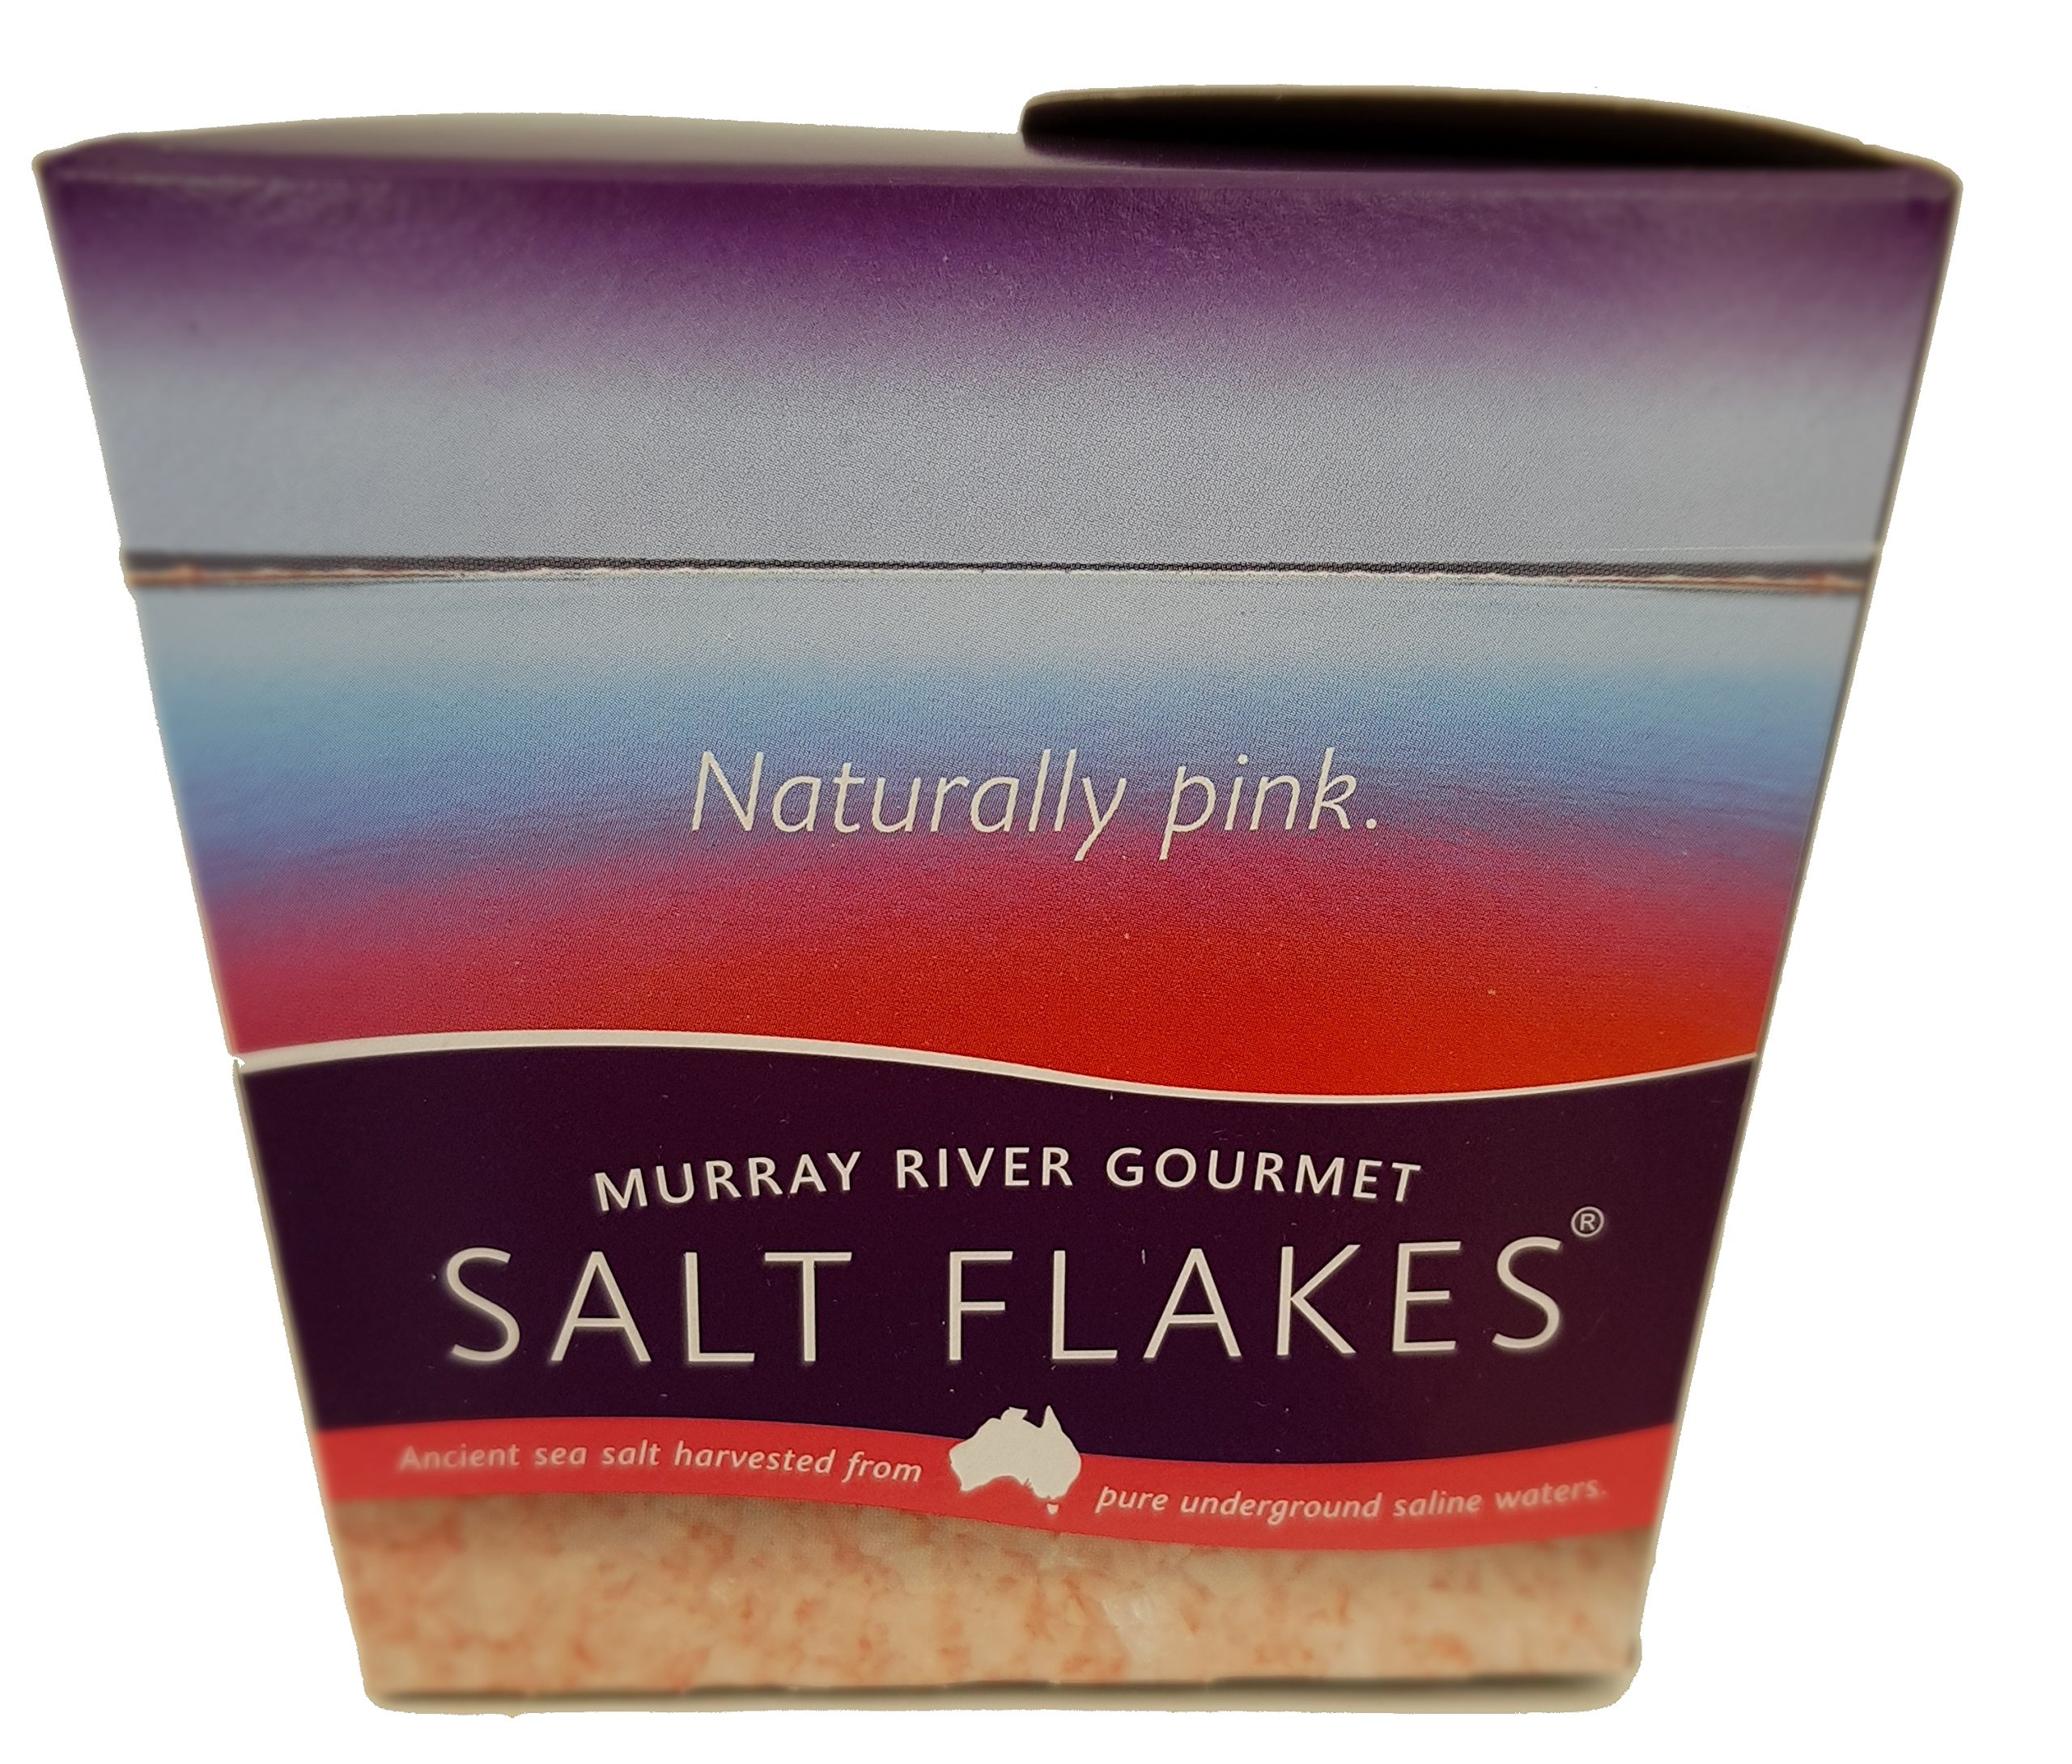 Murray River salt flakes 8.75oz Chefs Box Gourmet pure natural pink low sodium chef preferred finishing salt 100% natural and pure rich in minerals and enzymes